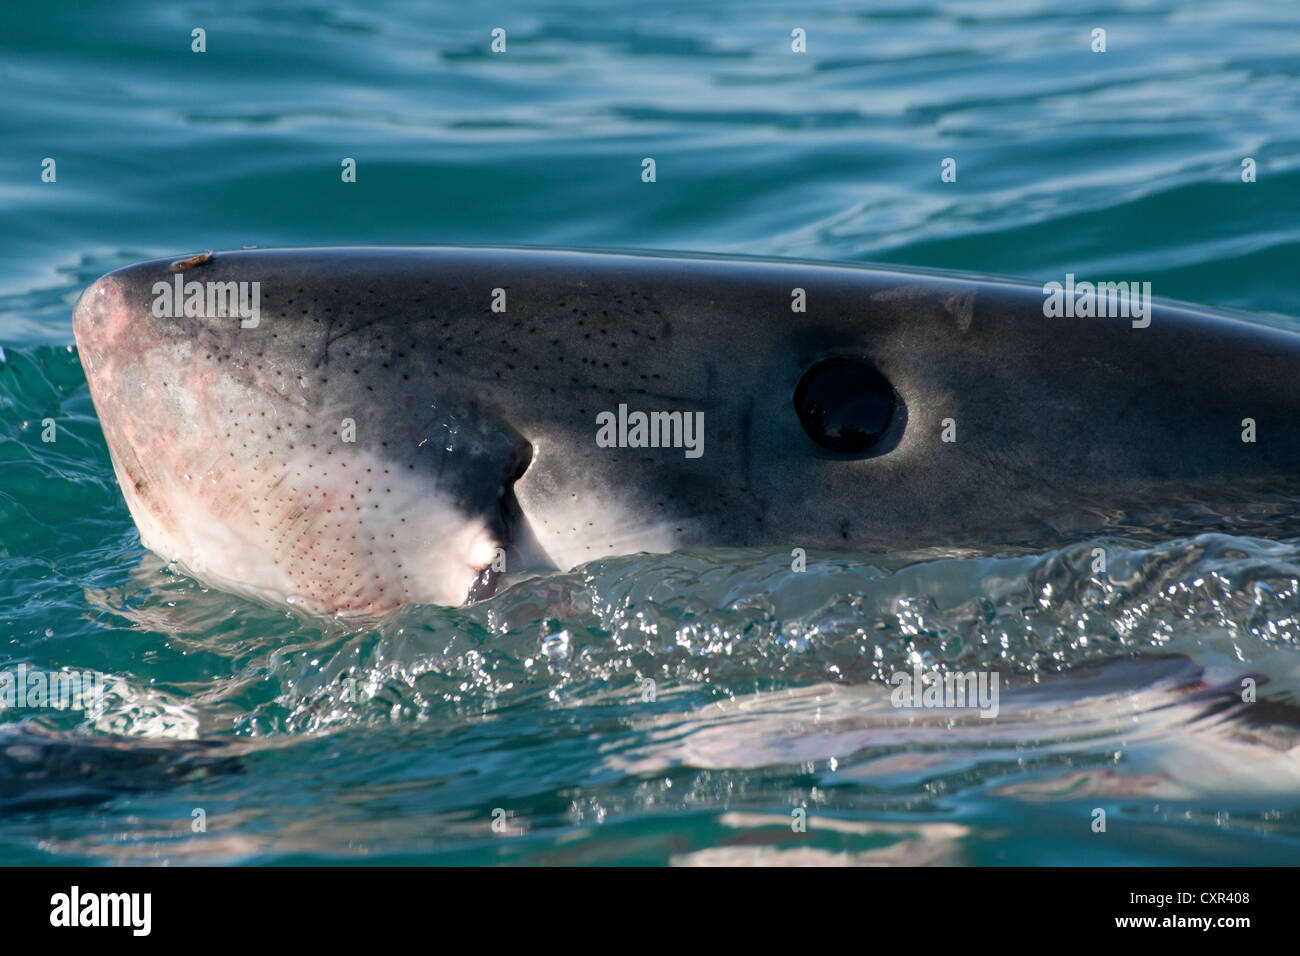 Great White Shark spy-hopping to get a better view what is above the water - Stock Image